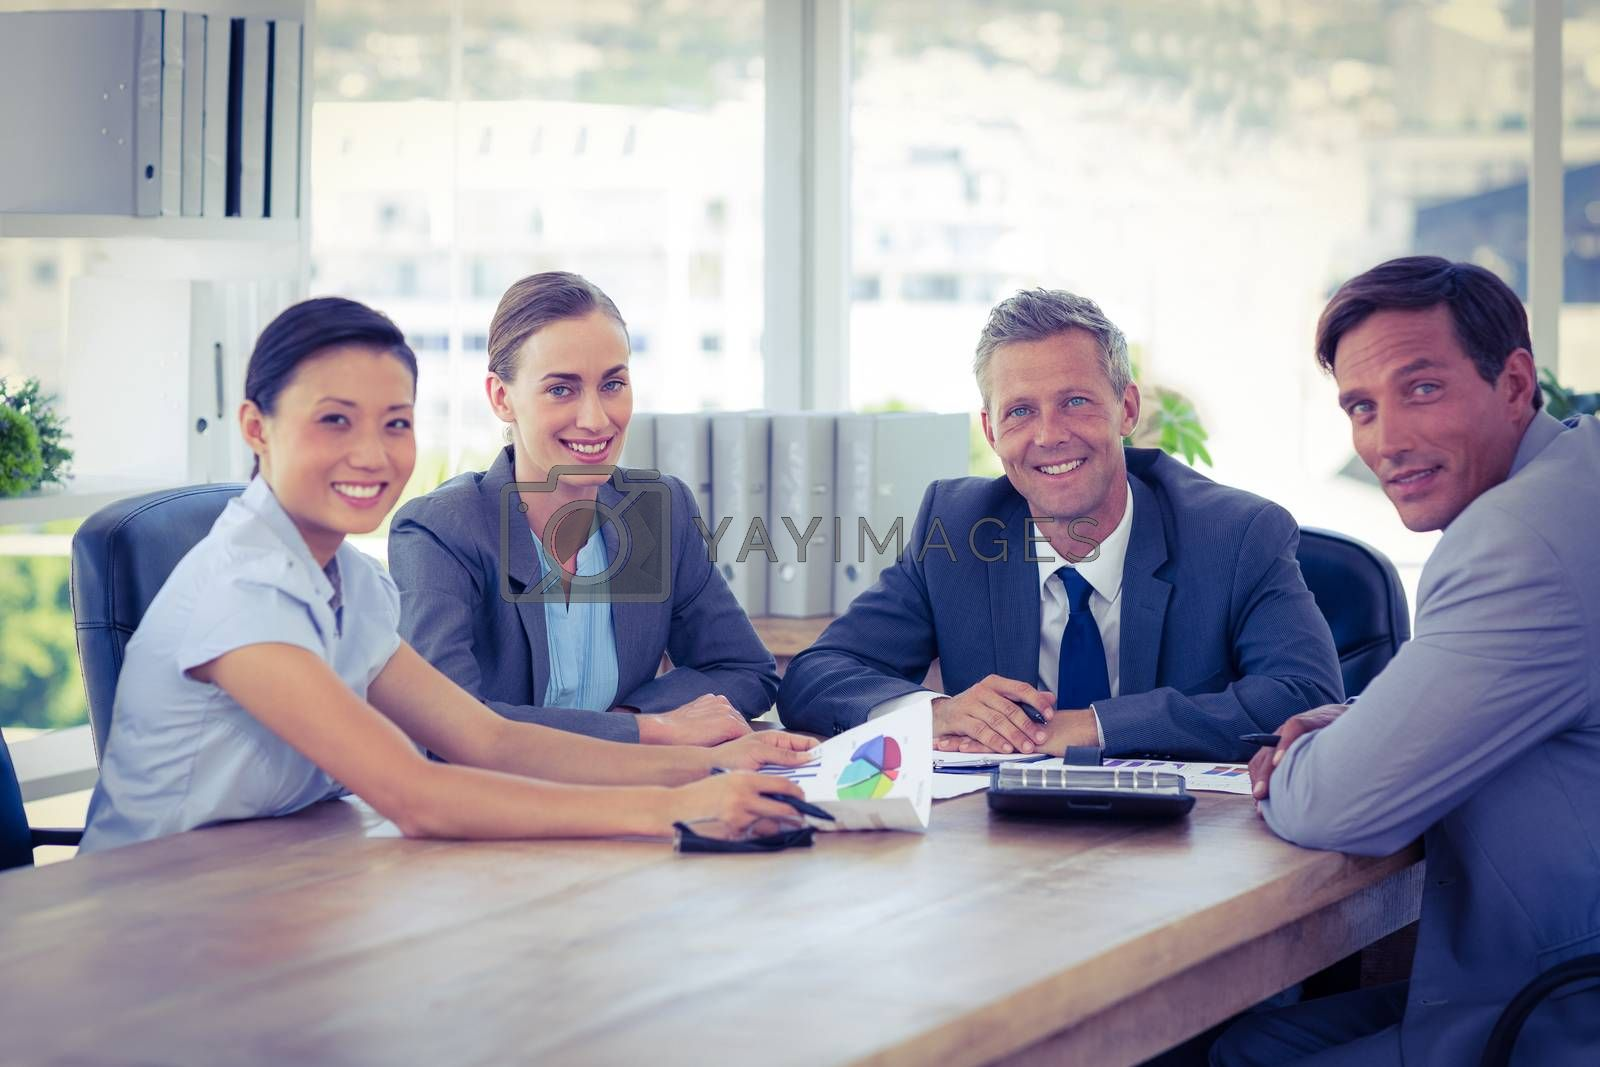 Royalty free image of Business people looking at camera during meeting  by Wavebreakmedia